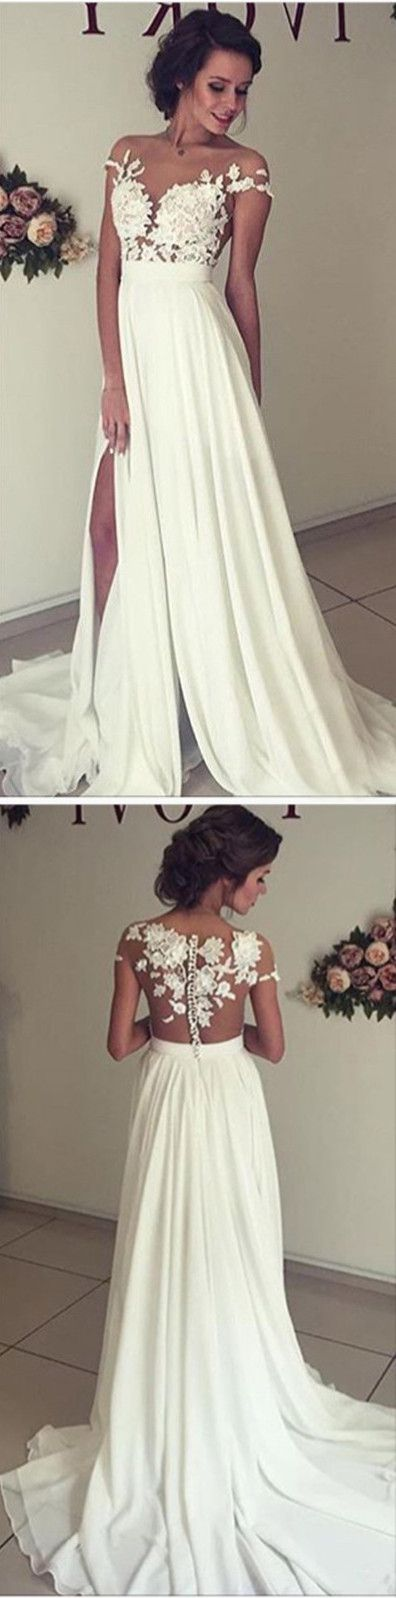 Lace Bodice Chiffon Wedding Dress Lace Beach Wedding Gown,White Prom Dress